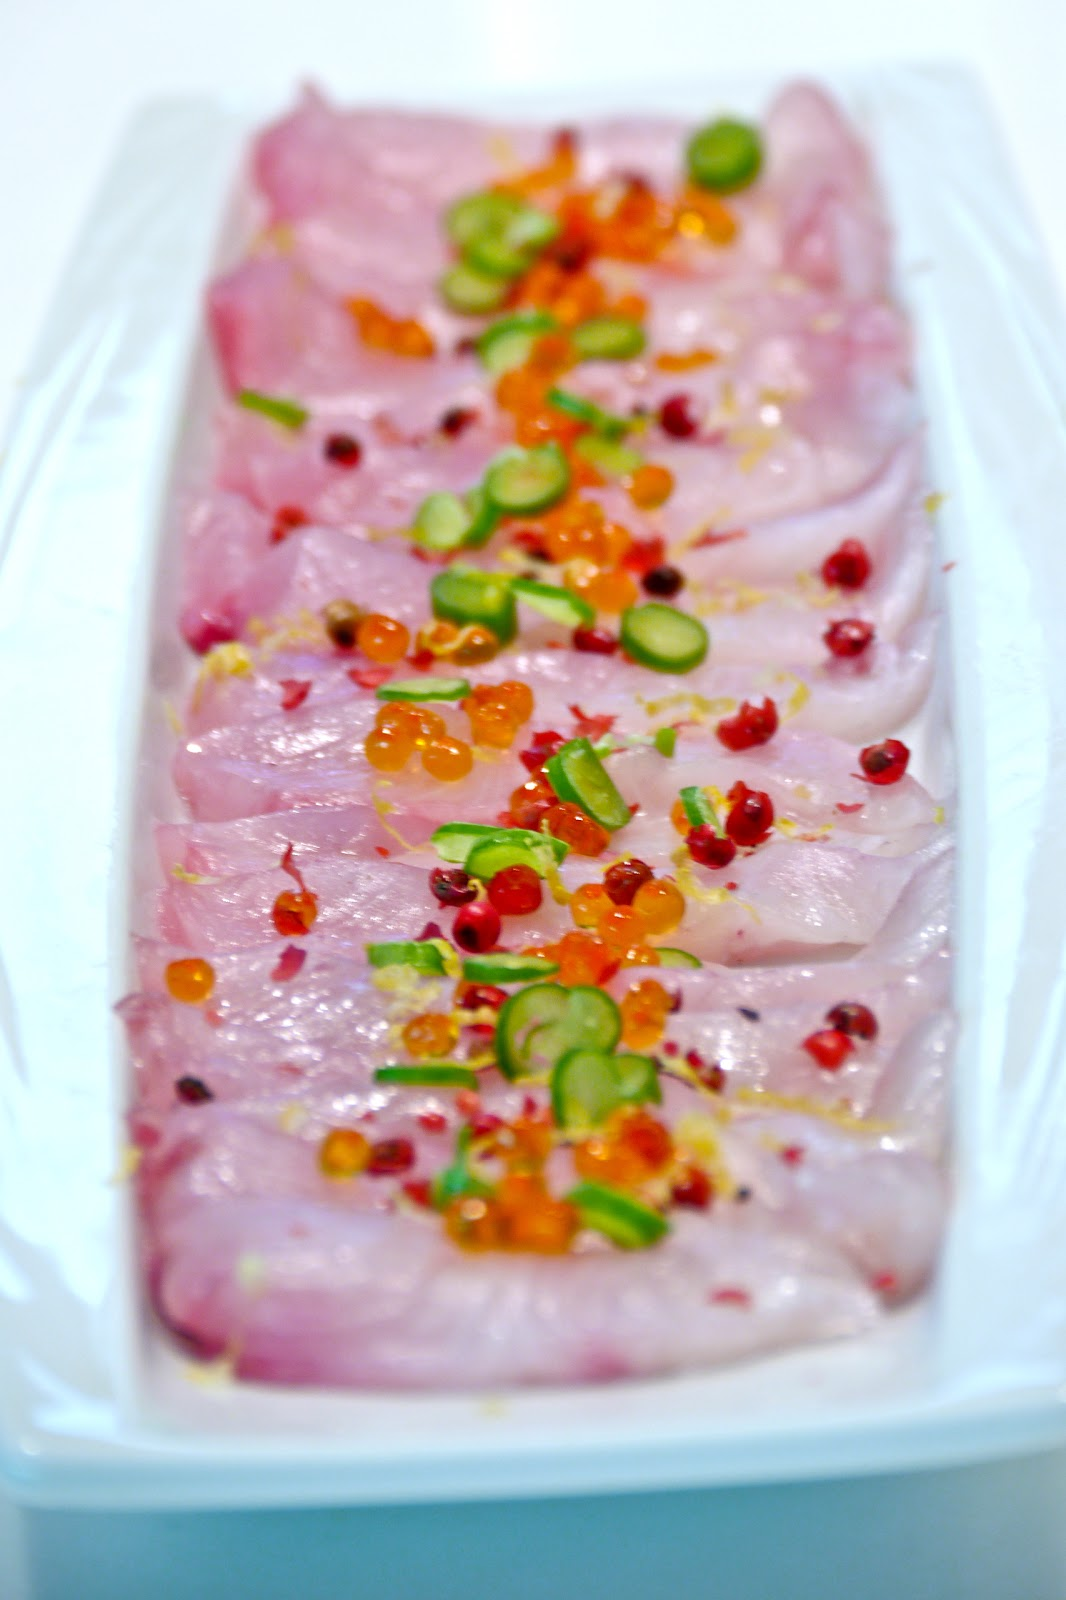 Cook on your feet: Kona Kampachi Sashimi